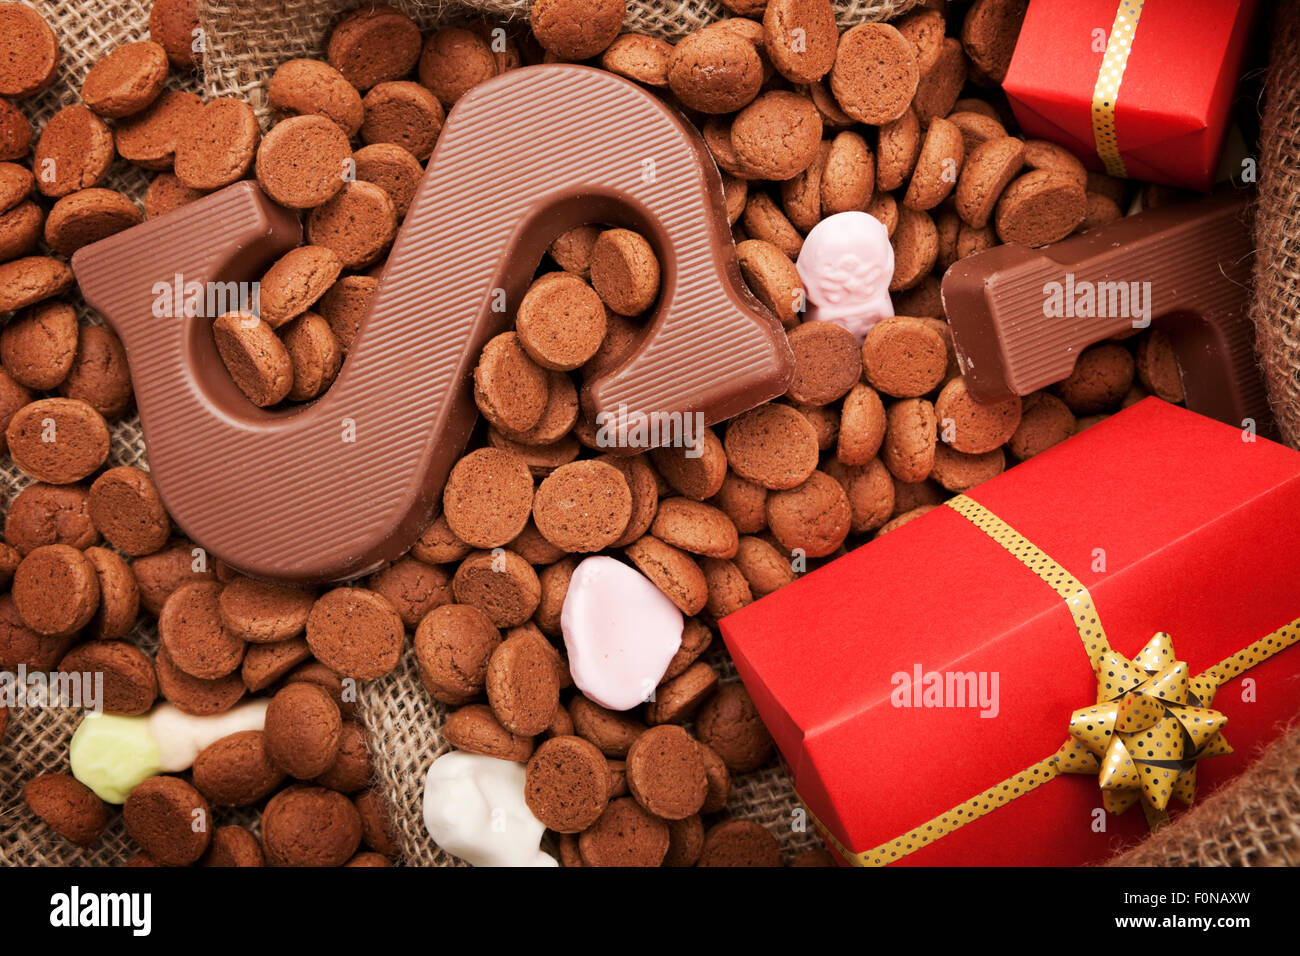 'De zak van Sinterklaas' (St. Nicholas' bag) filled with 'pepernoten', a letter of chocolate - Stock Image